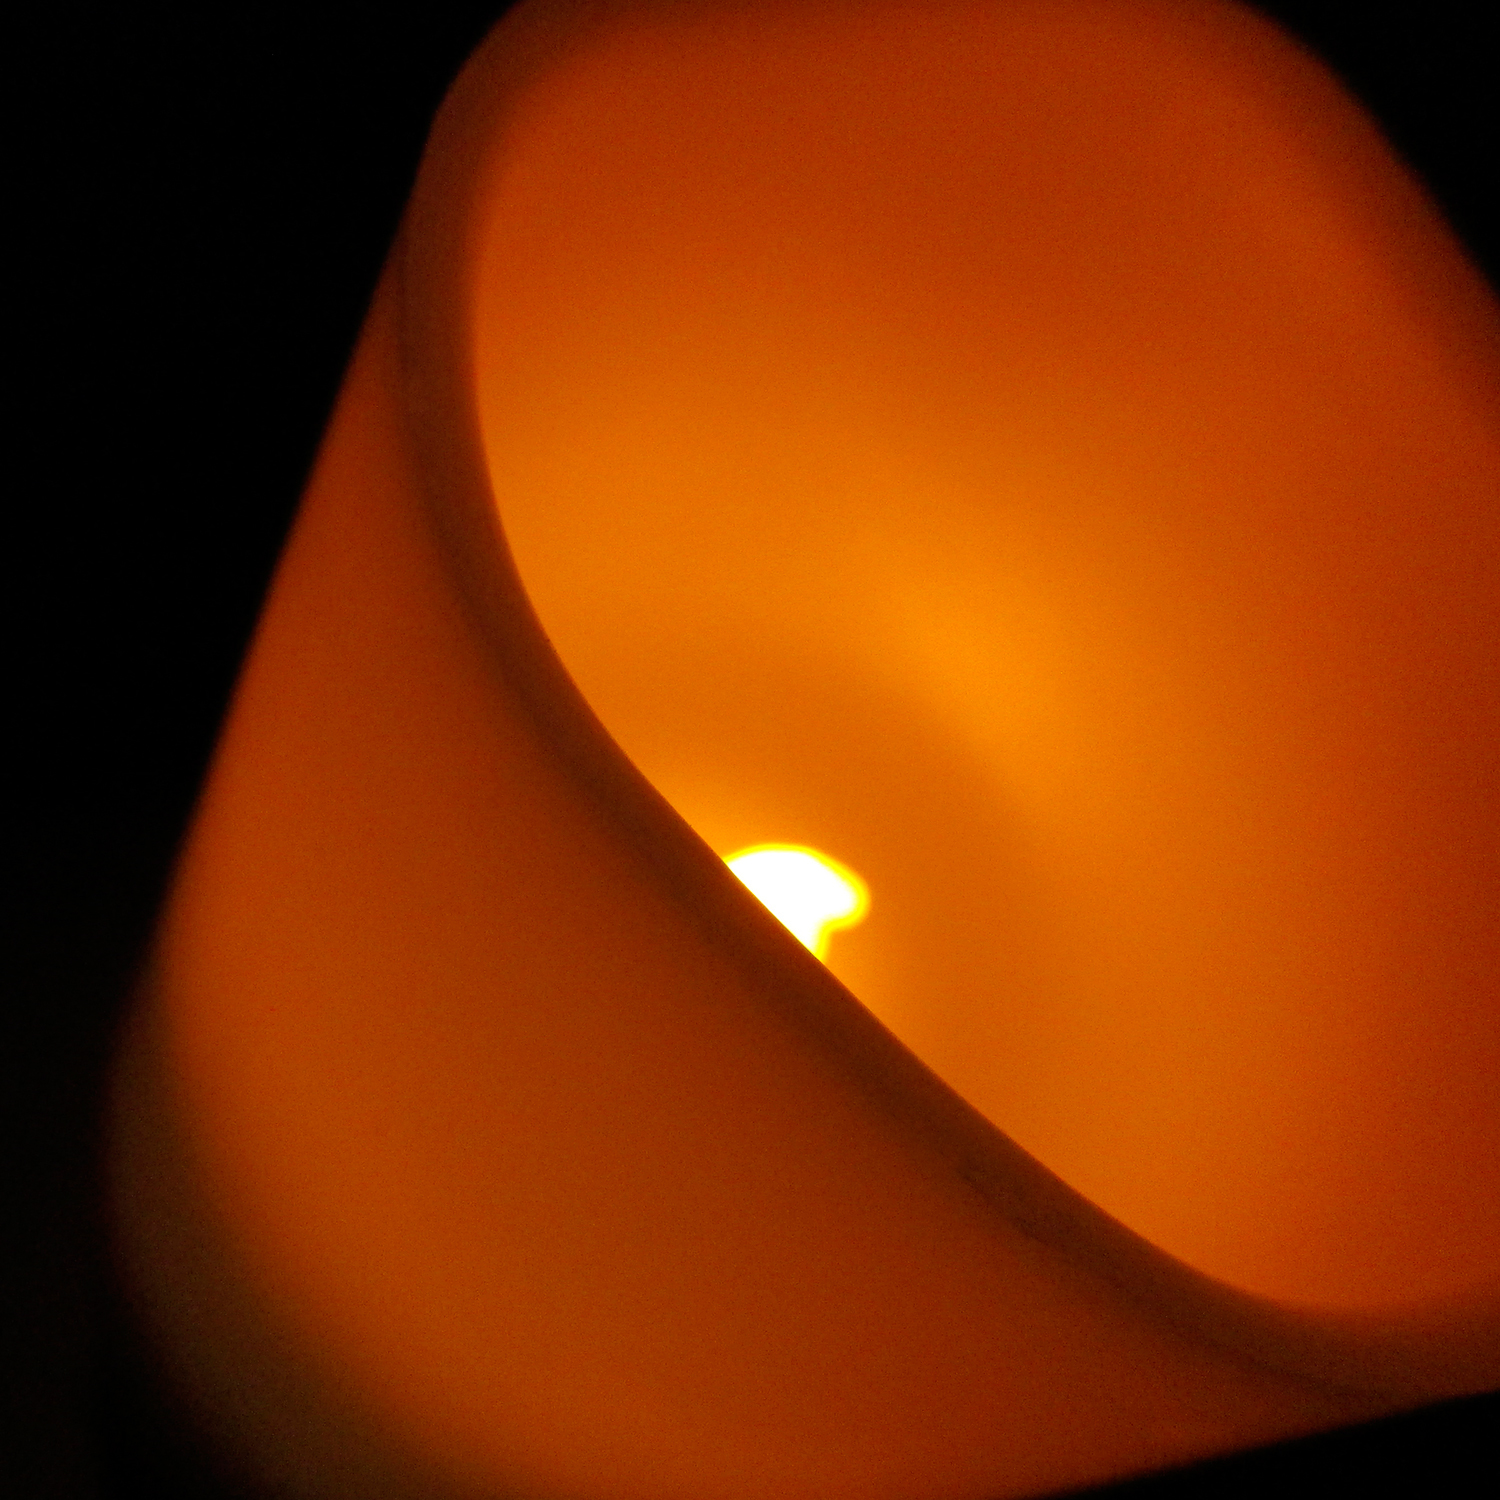 Electric Candle String Lights : Events, Promotions and Inspirations from Lights.com